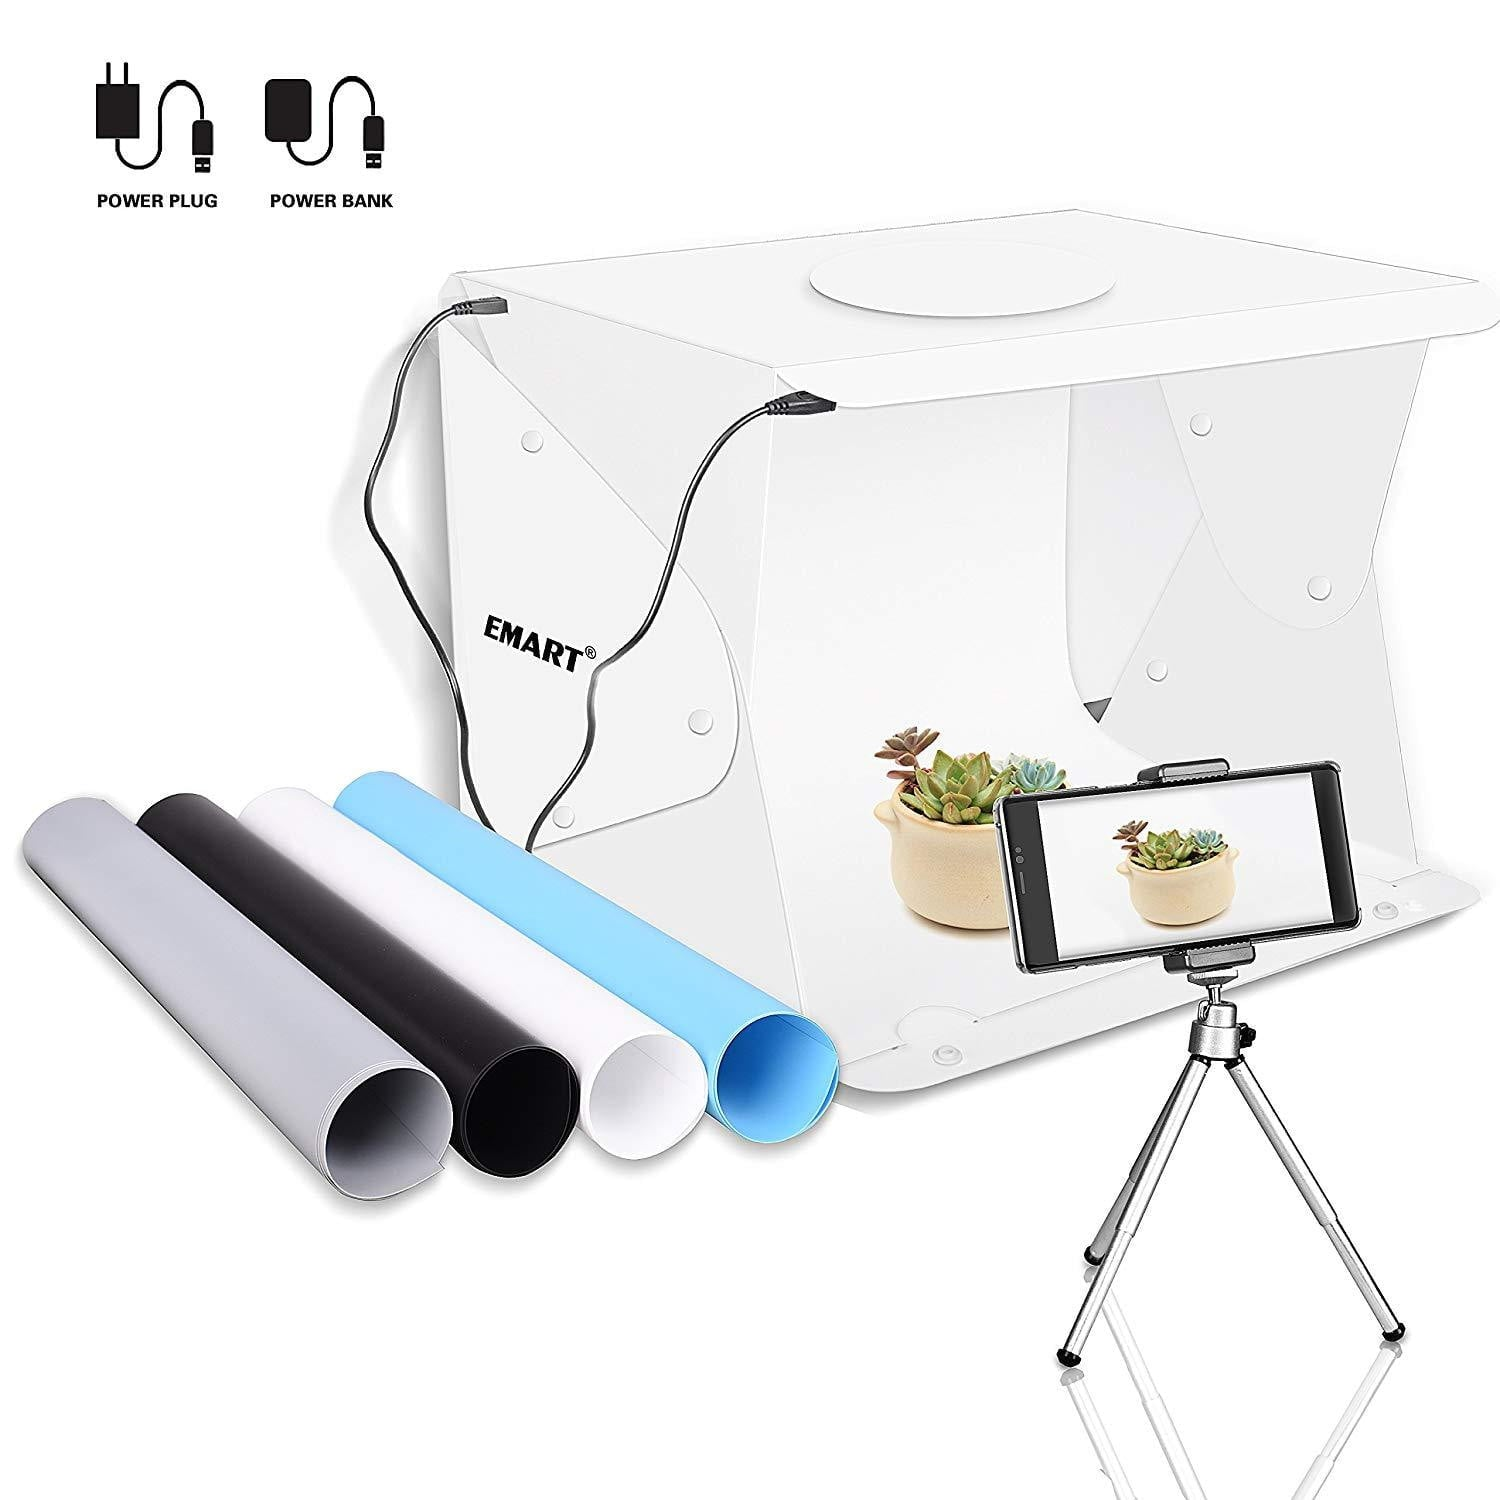 "Emart 14"" x 16"" Portable Photo Studio Shooting Tent - EMART8"